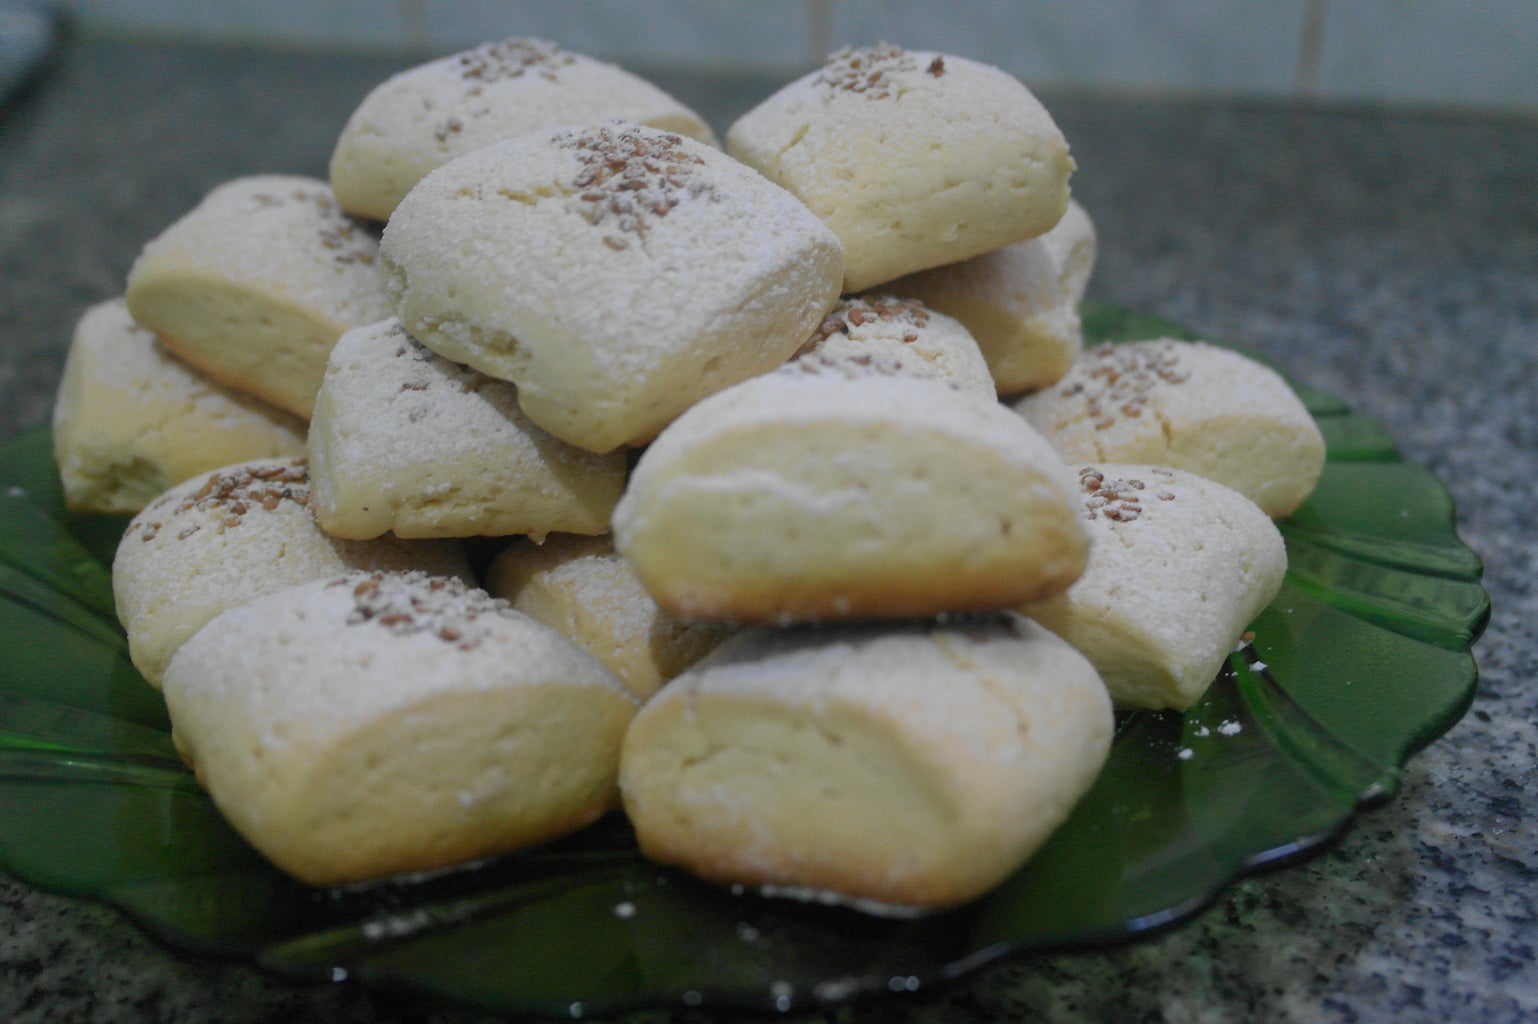 After They Cool Completly Dust With Icing Sugar.